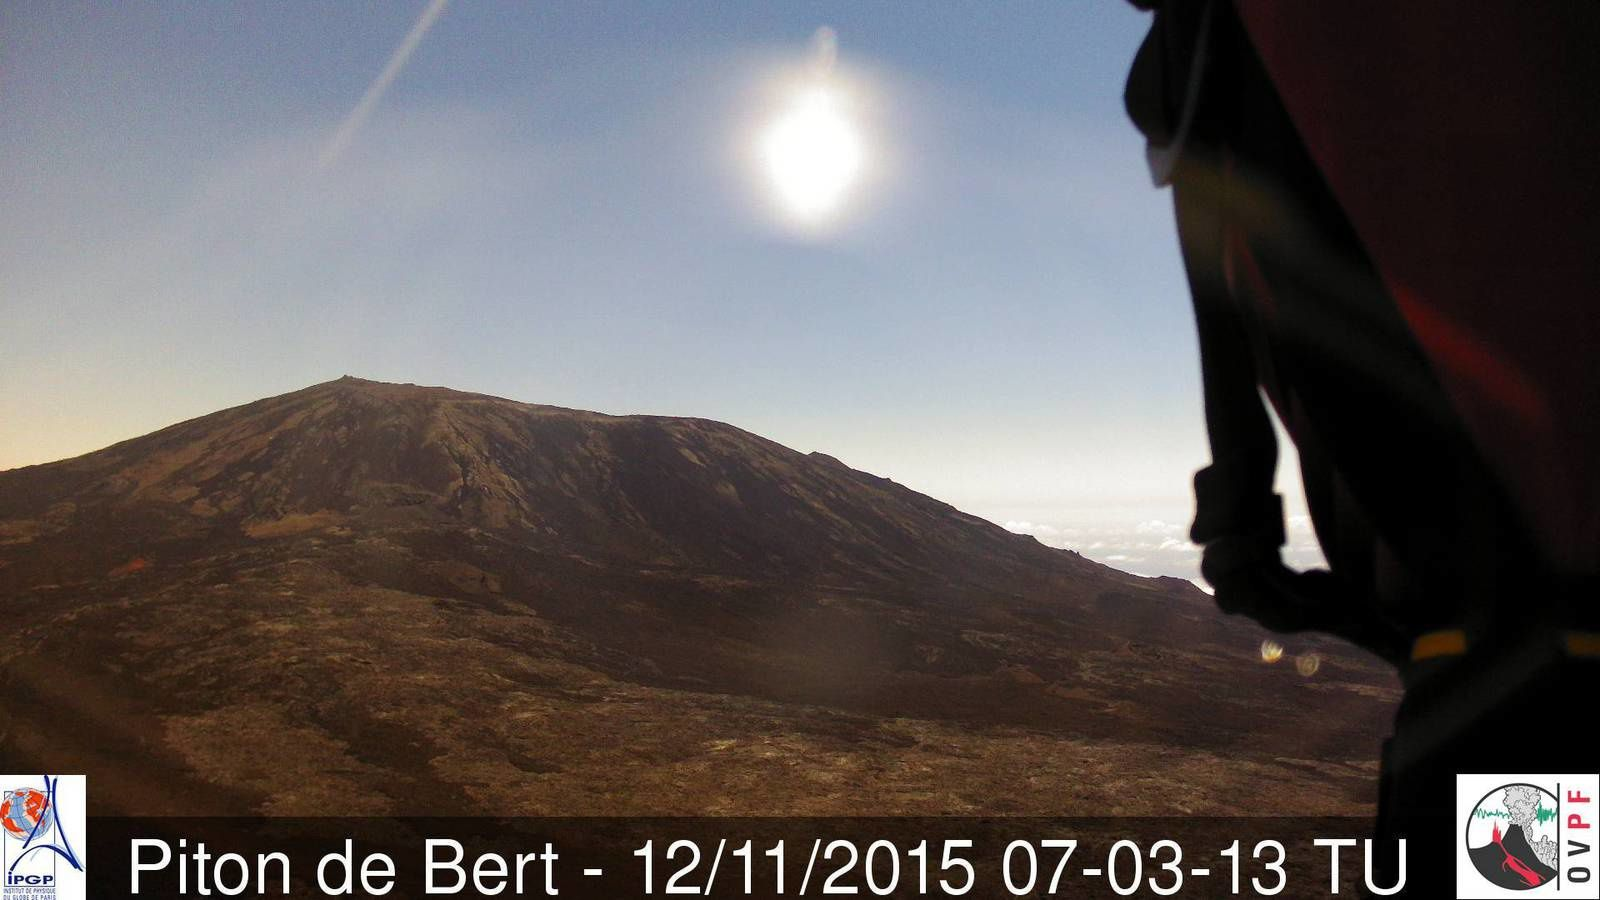 Piton de la Fournaise - the apparent calm 12.011.2015 / 7:03 GMT - webcam Piton Bert / OVPF